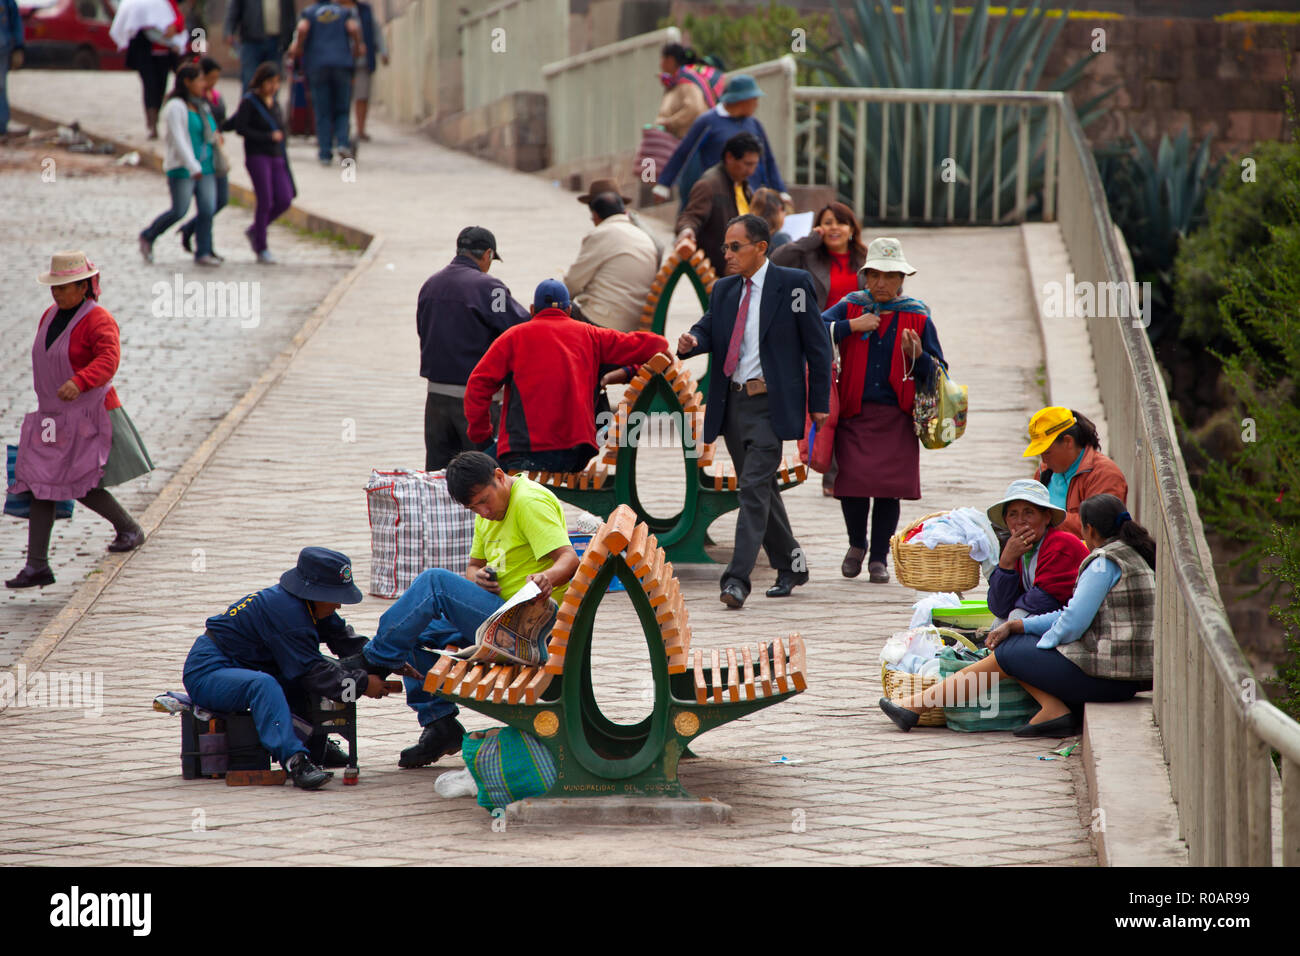 An ordinary day in Cusco - Stock Image